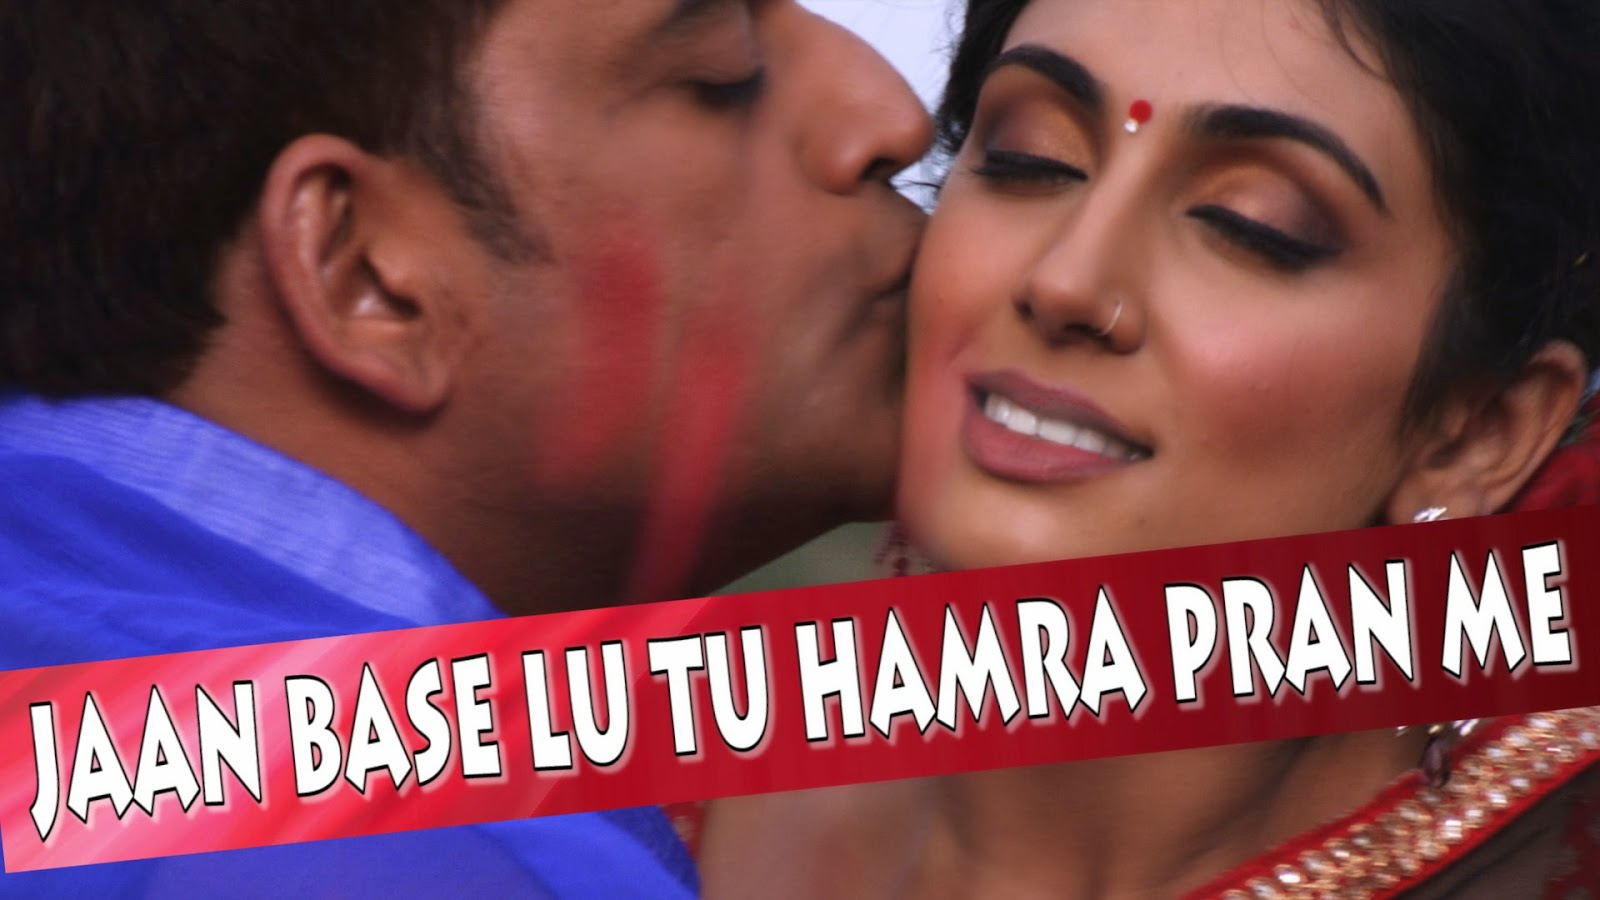 Ravi Kishan Kiss of shinjini Kulkarni in song Jaan Base Lu Hamara Pran Me from Pandit Ji Batai Na Biyah Kab Hoi 2